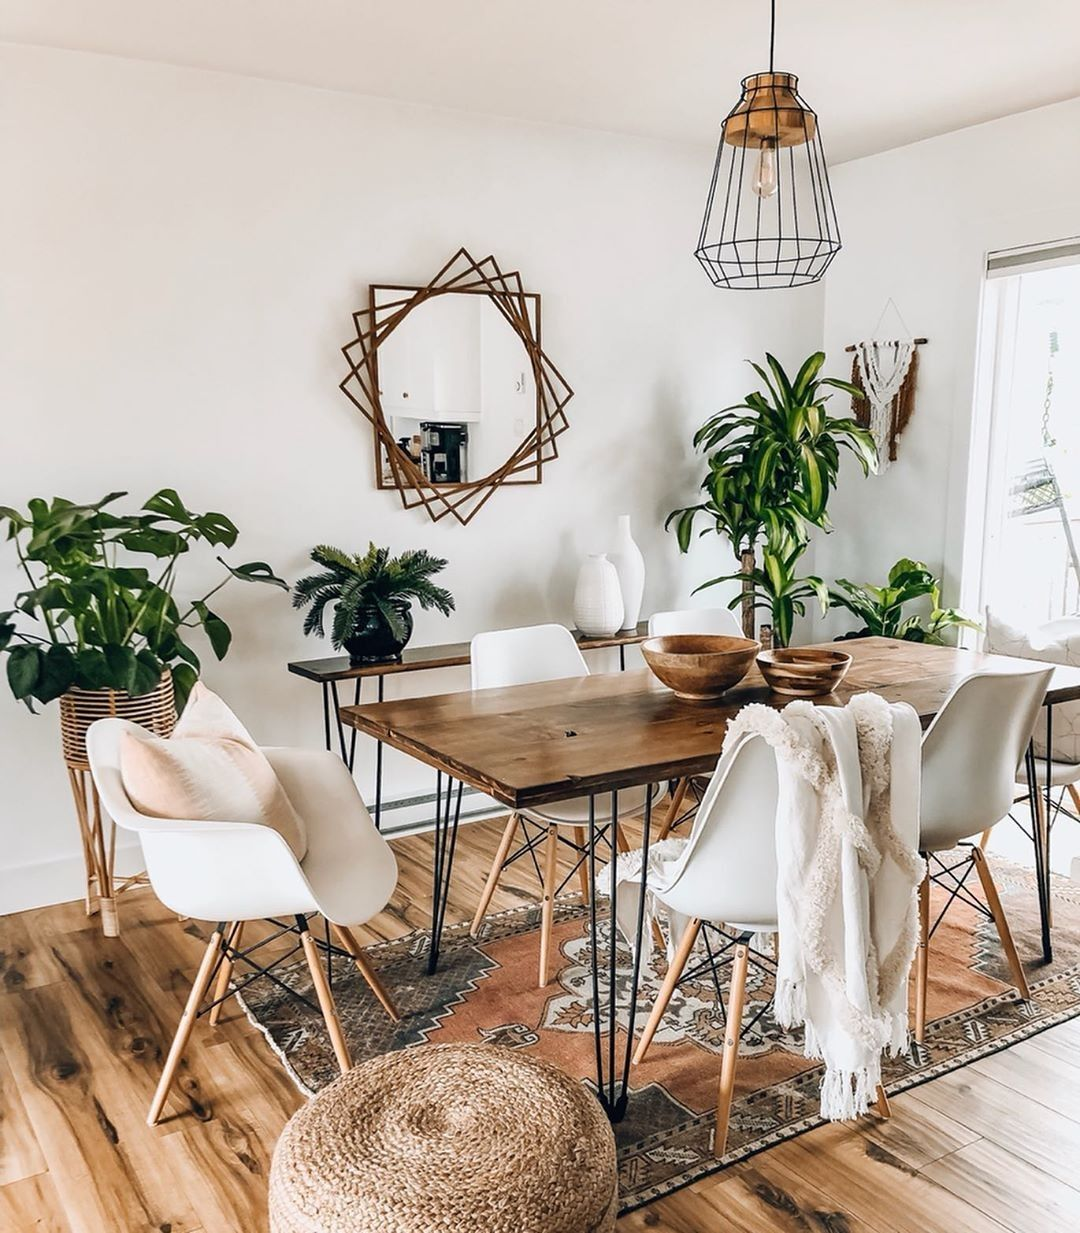 bohemian style home decors with latest designs boho dining room bohemian dining room home decor on boho chic decor living room bohemian kitchen id=95484